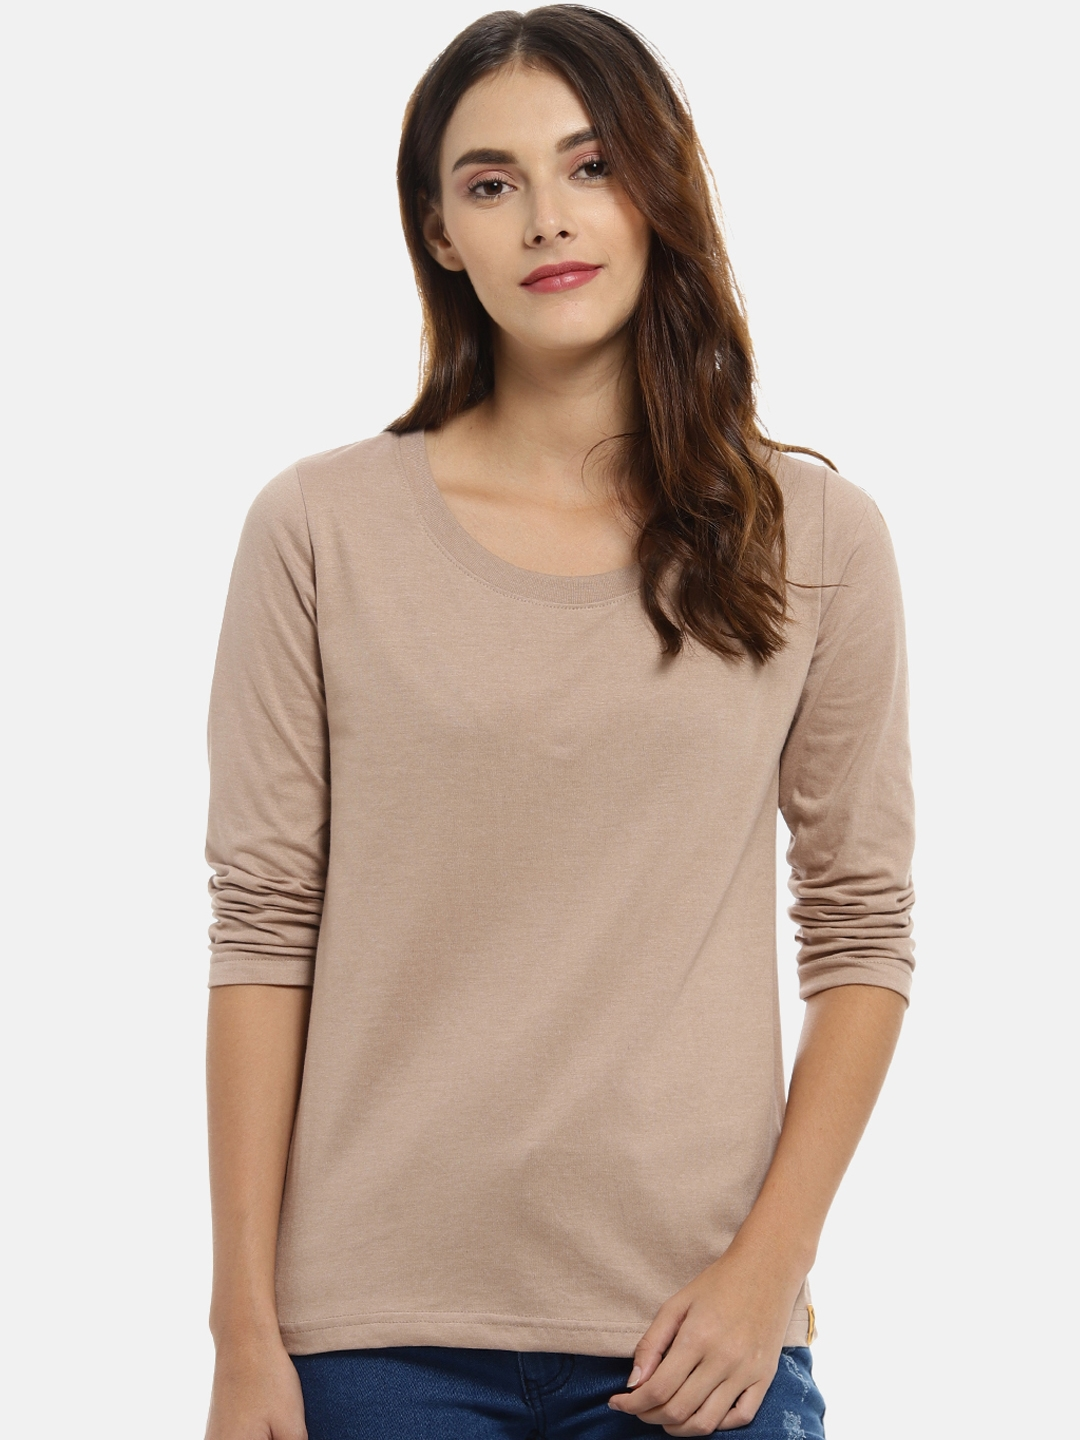 Campus Sutra Women Brown Solid Top